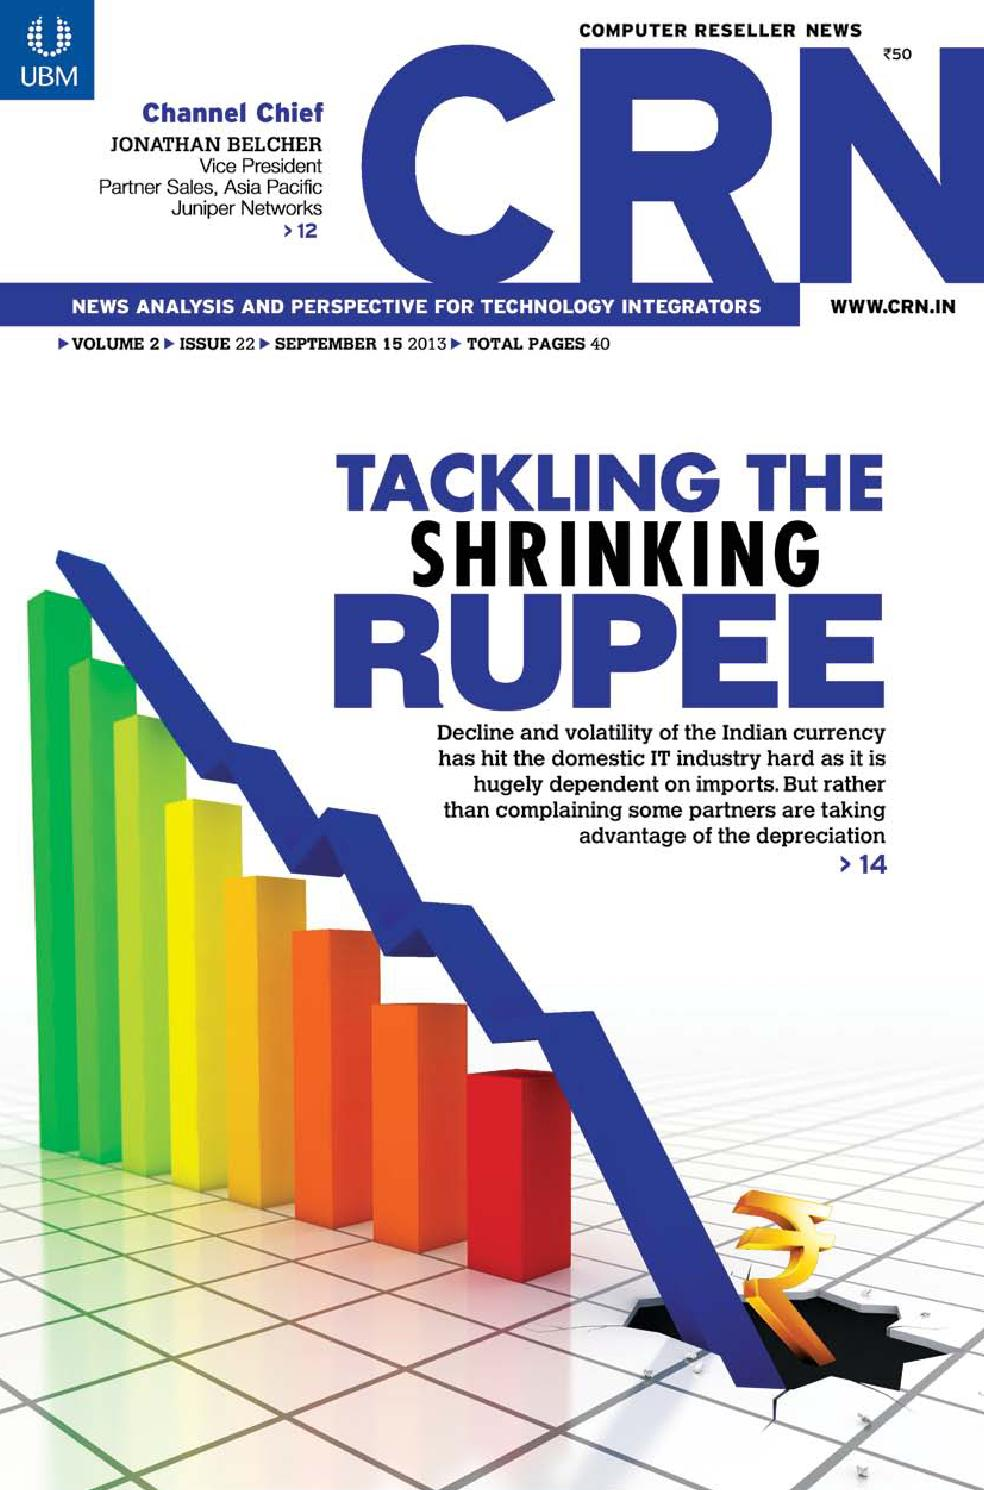 Crn 15 september 2013 all pages by UBM India - issuu